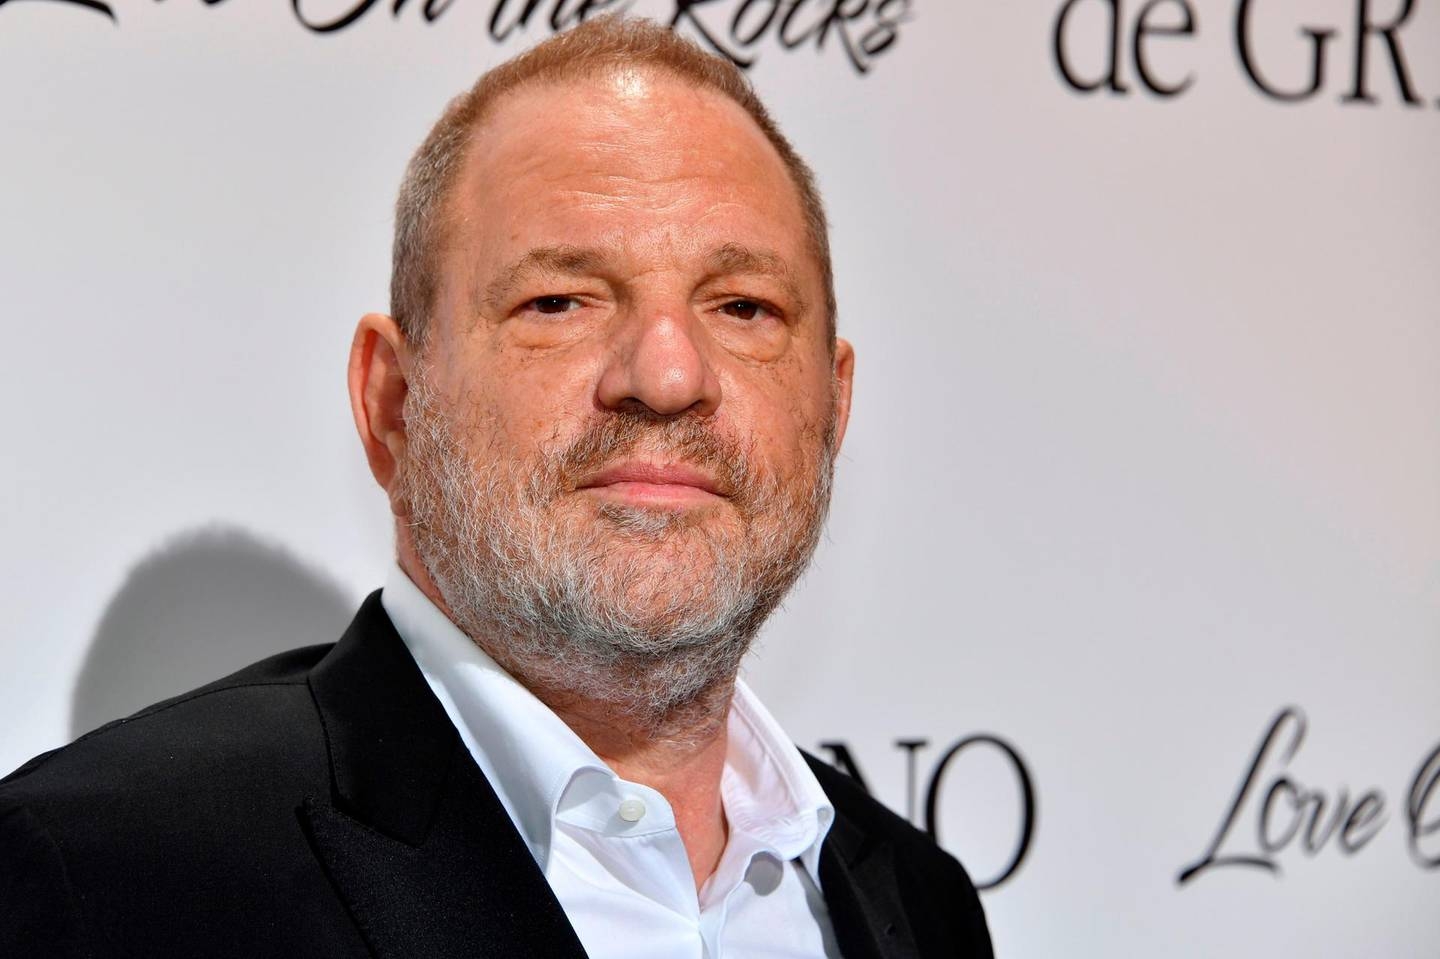 (FILES) This file photo taken on May 23, 2017 shows US film producer Harvey Weinstein attending the De Grisogono Party on the sidelines of the 70th Cannes Film Festival in Antibes, France.  Harvey Weinstein's lawyers have called on July 17, 2018, for the dismissal of the lawsuit filed by actress Ashley Judd, one of the first to publicly accuse the Hollywood tycoon of sexual harassment, who sued him for derailing her career. / AFP / Yann COATSALIOU